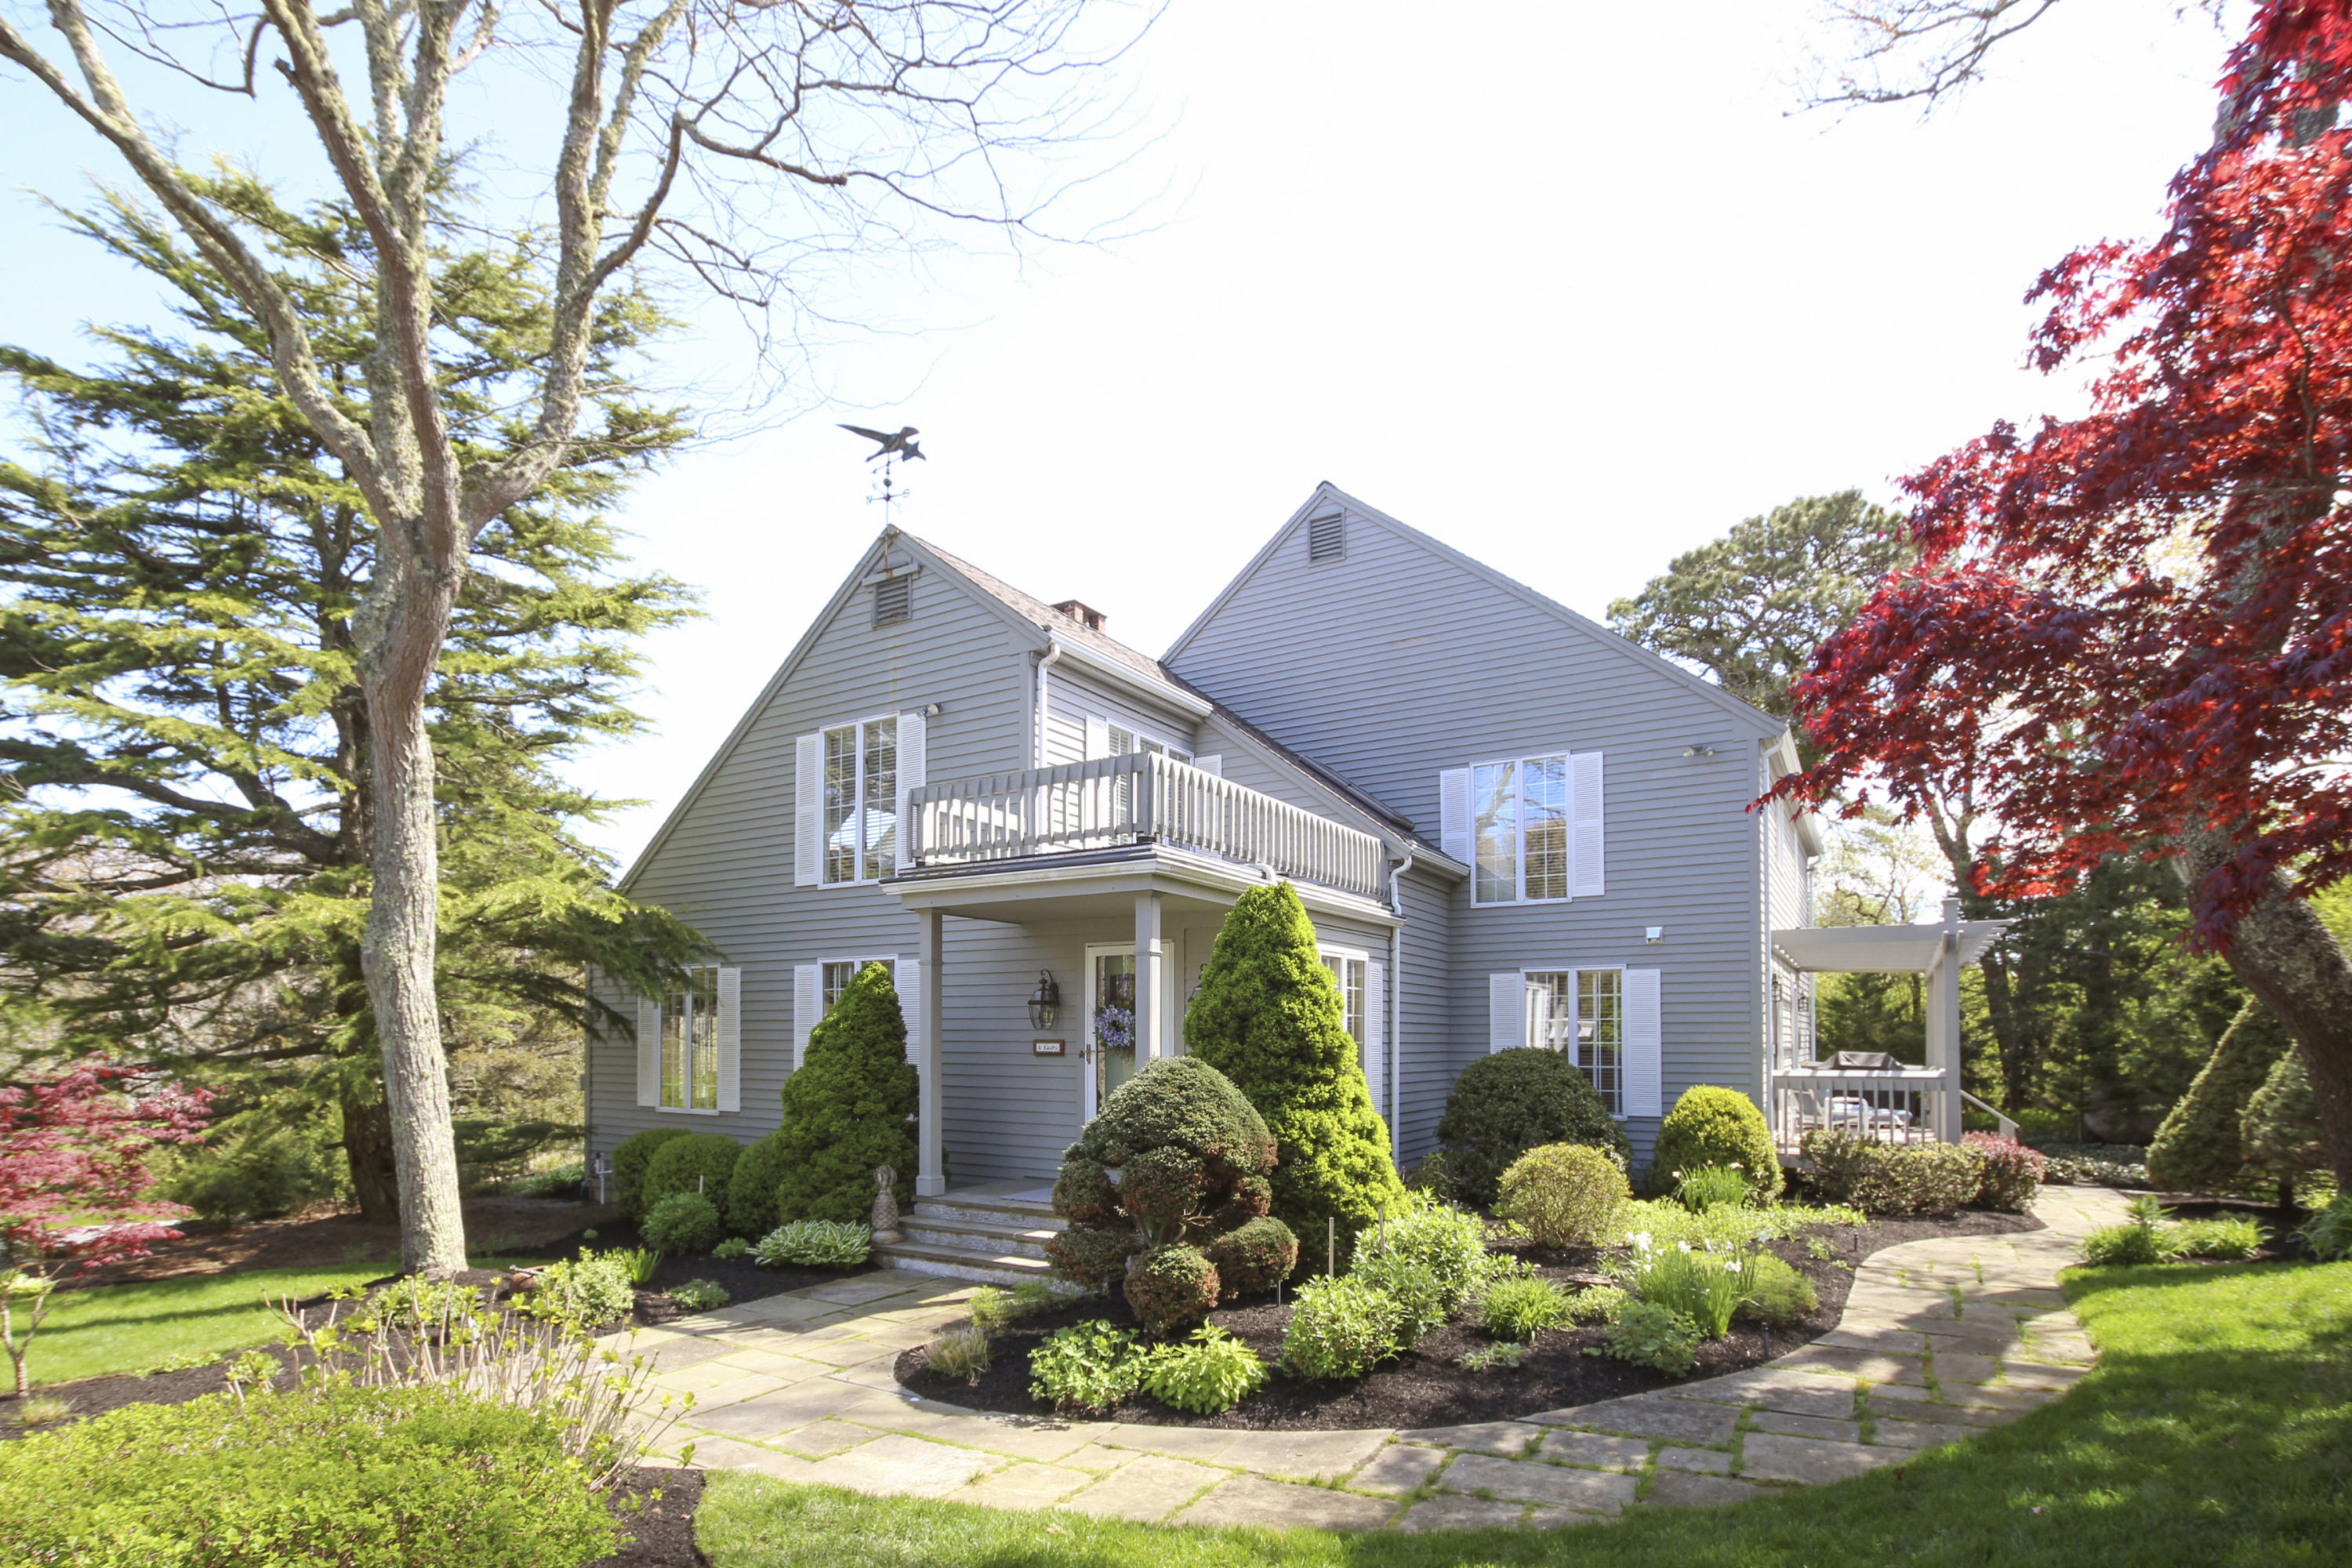 122 Cove Lane Barnstable, MA 02637